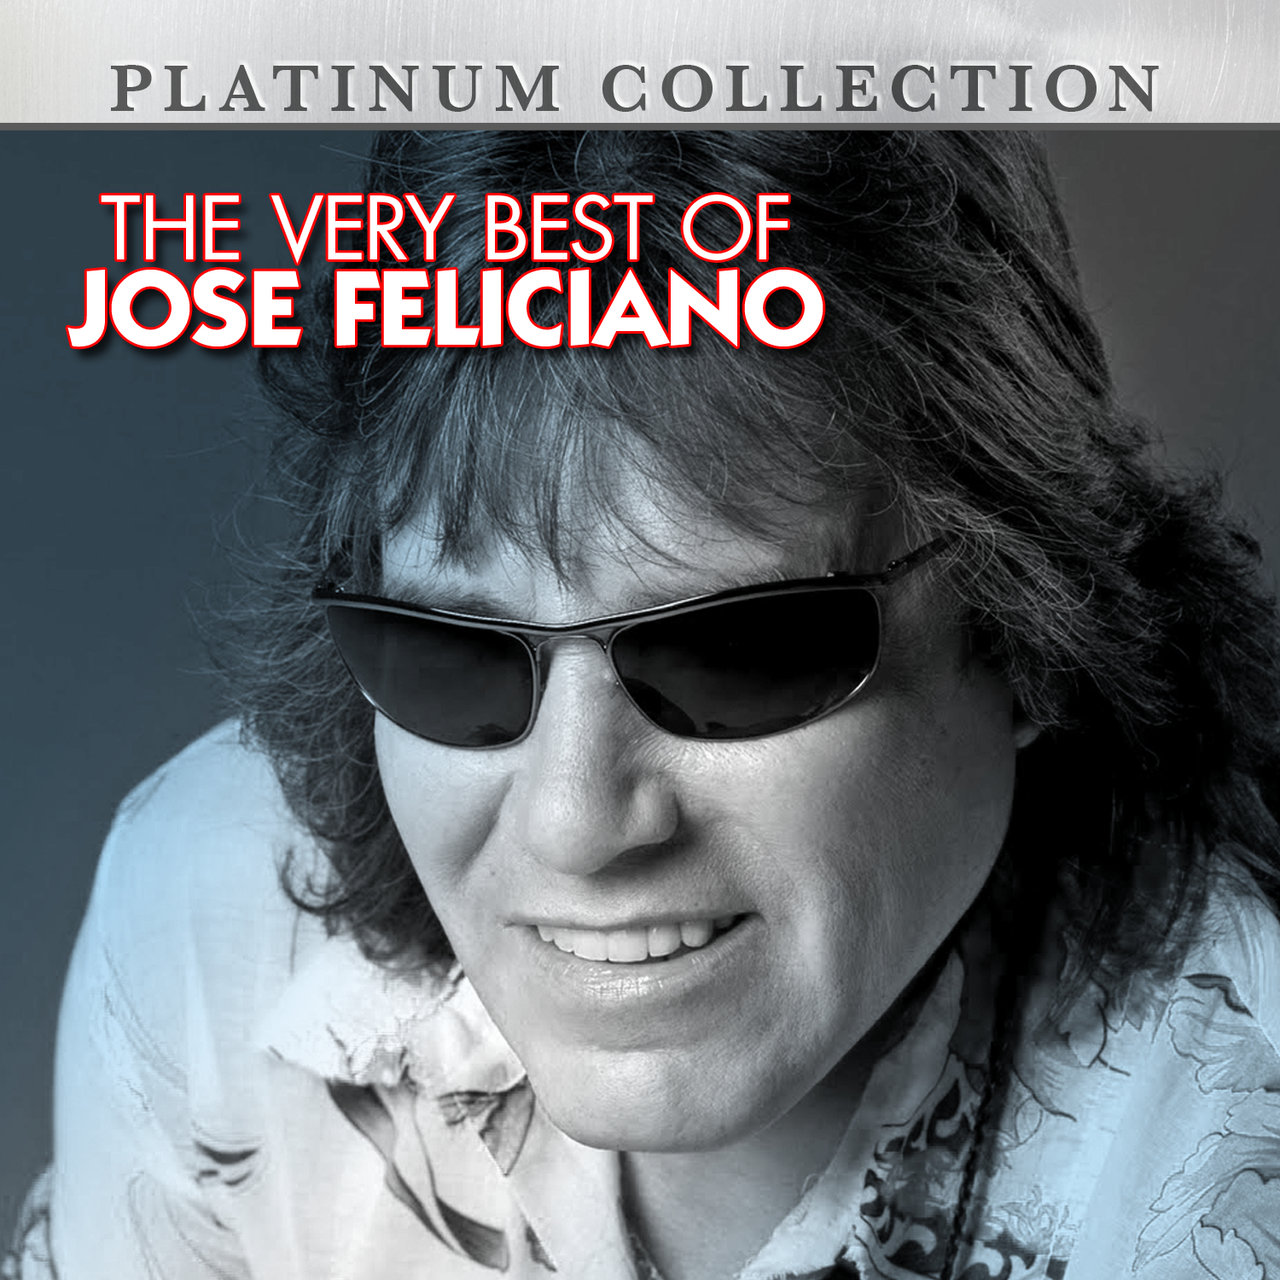 The Very Best of Jose Feliciano